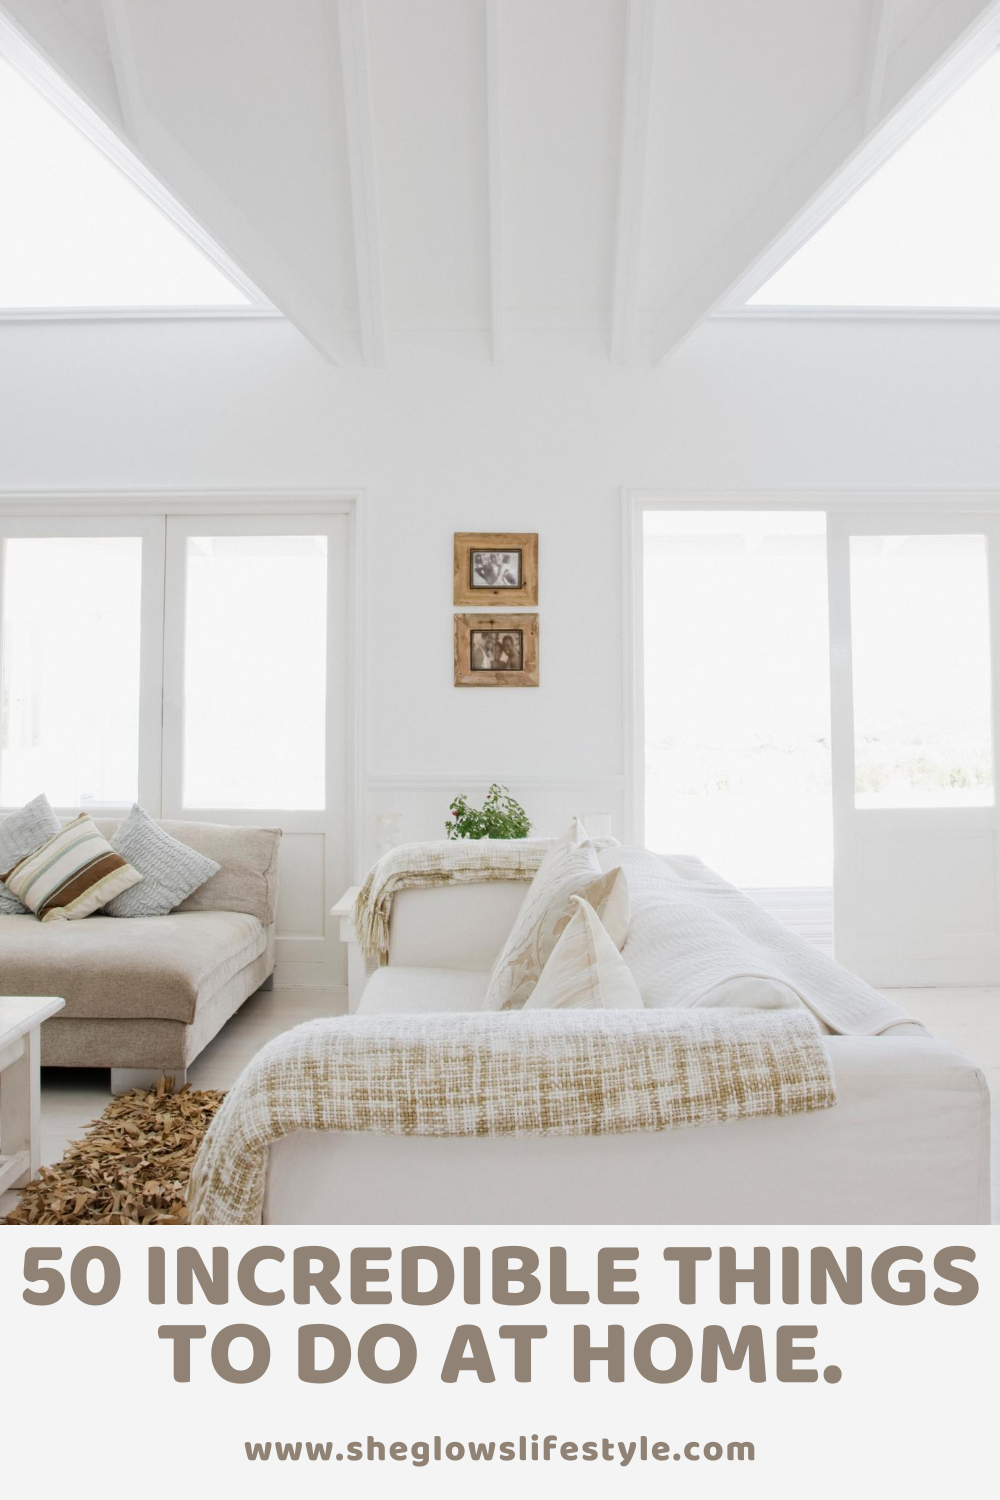 50 Incredible things to do at home.#selfcare#athome#athomealone